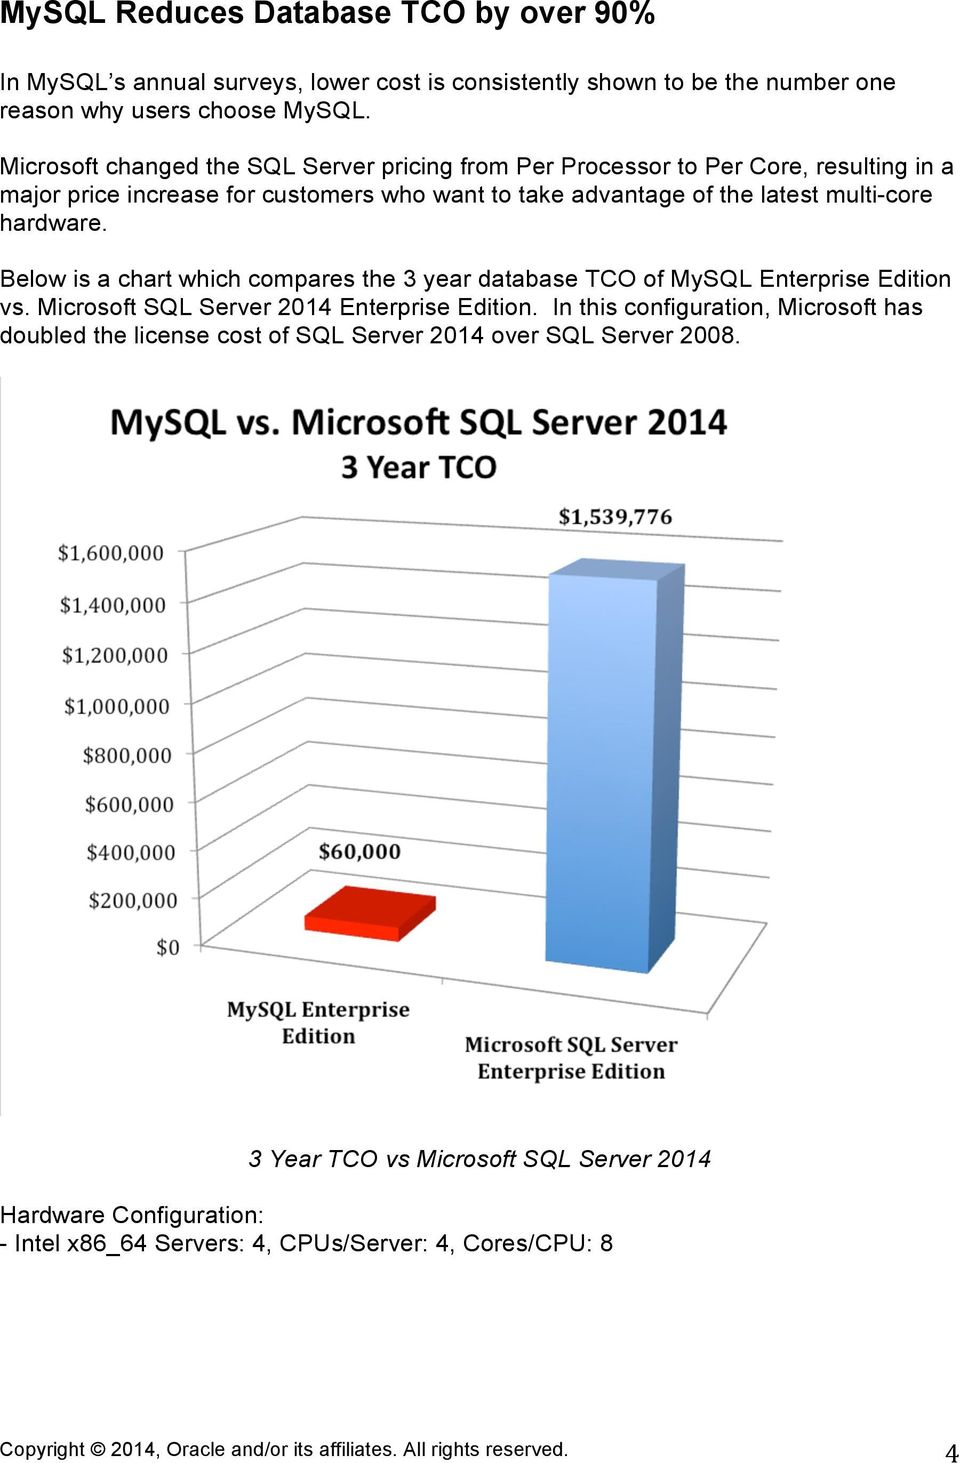 multi-core hardware. Below is a chart which compares the 3 year database TCO of MySQL Enterprise Edition vs. Microsoft SQL Server 2014 Enterprise Edition.